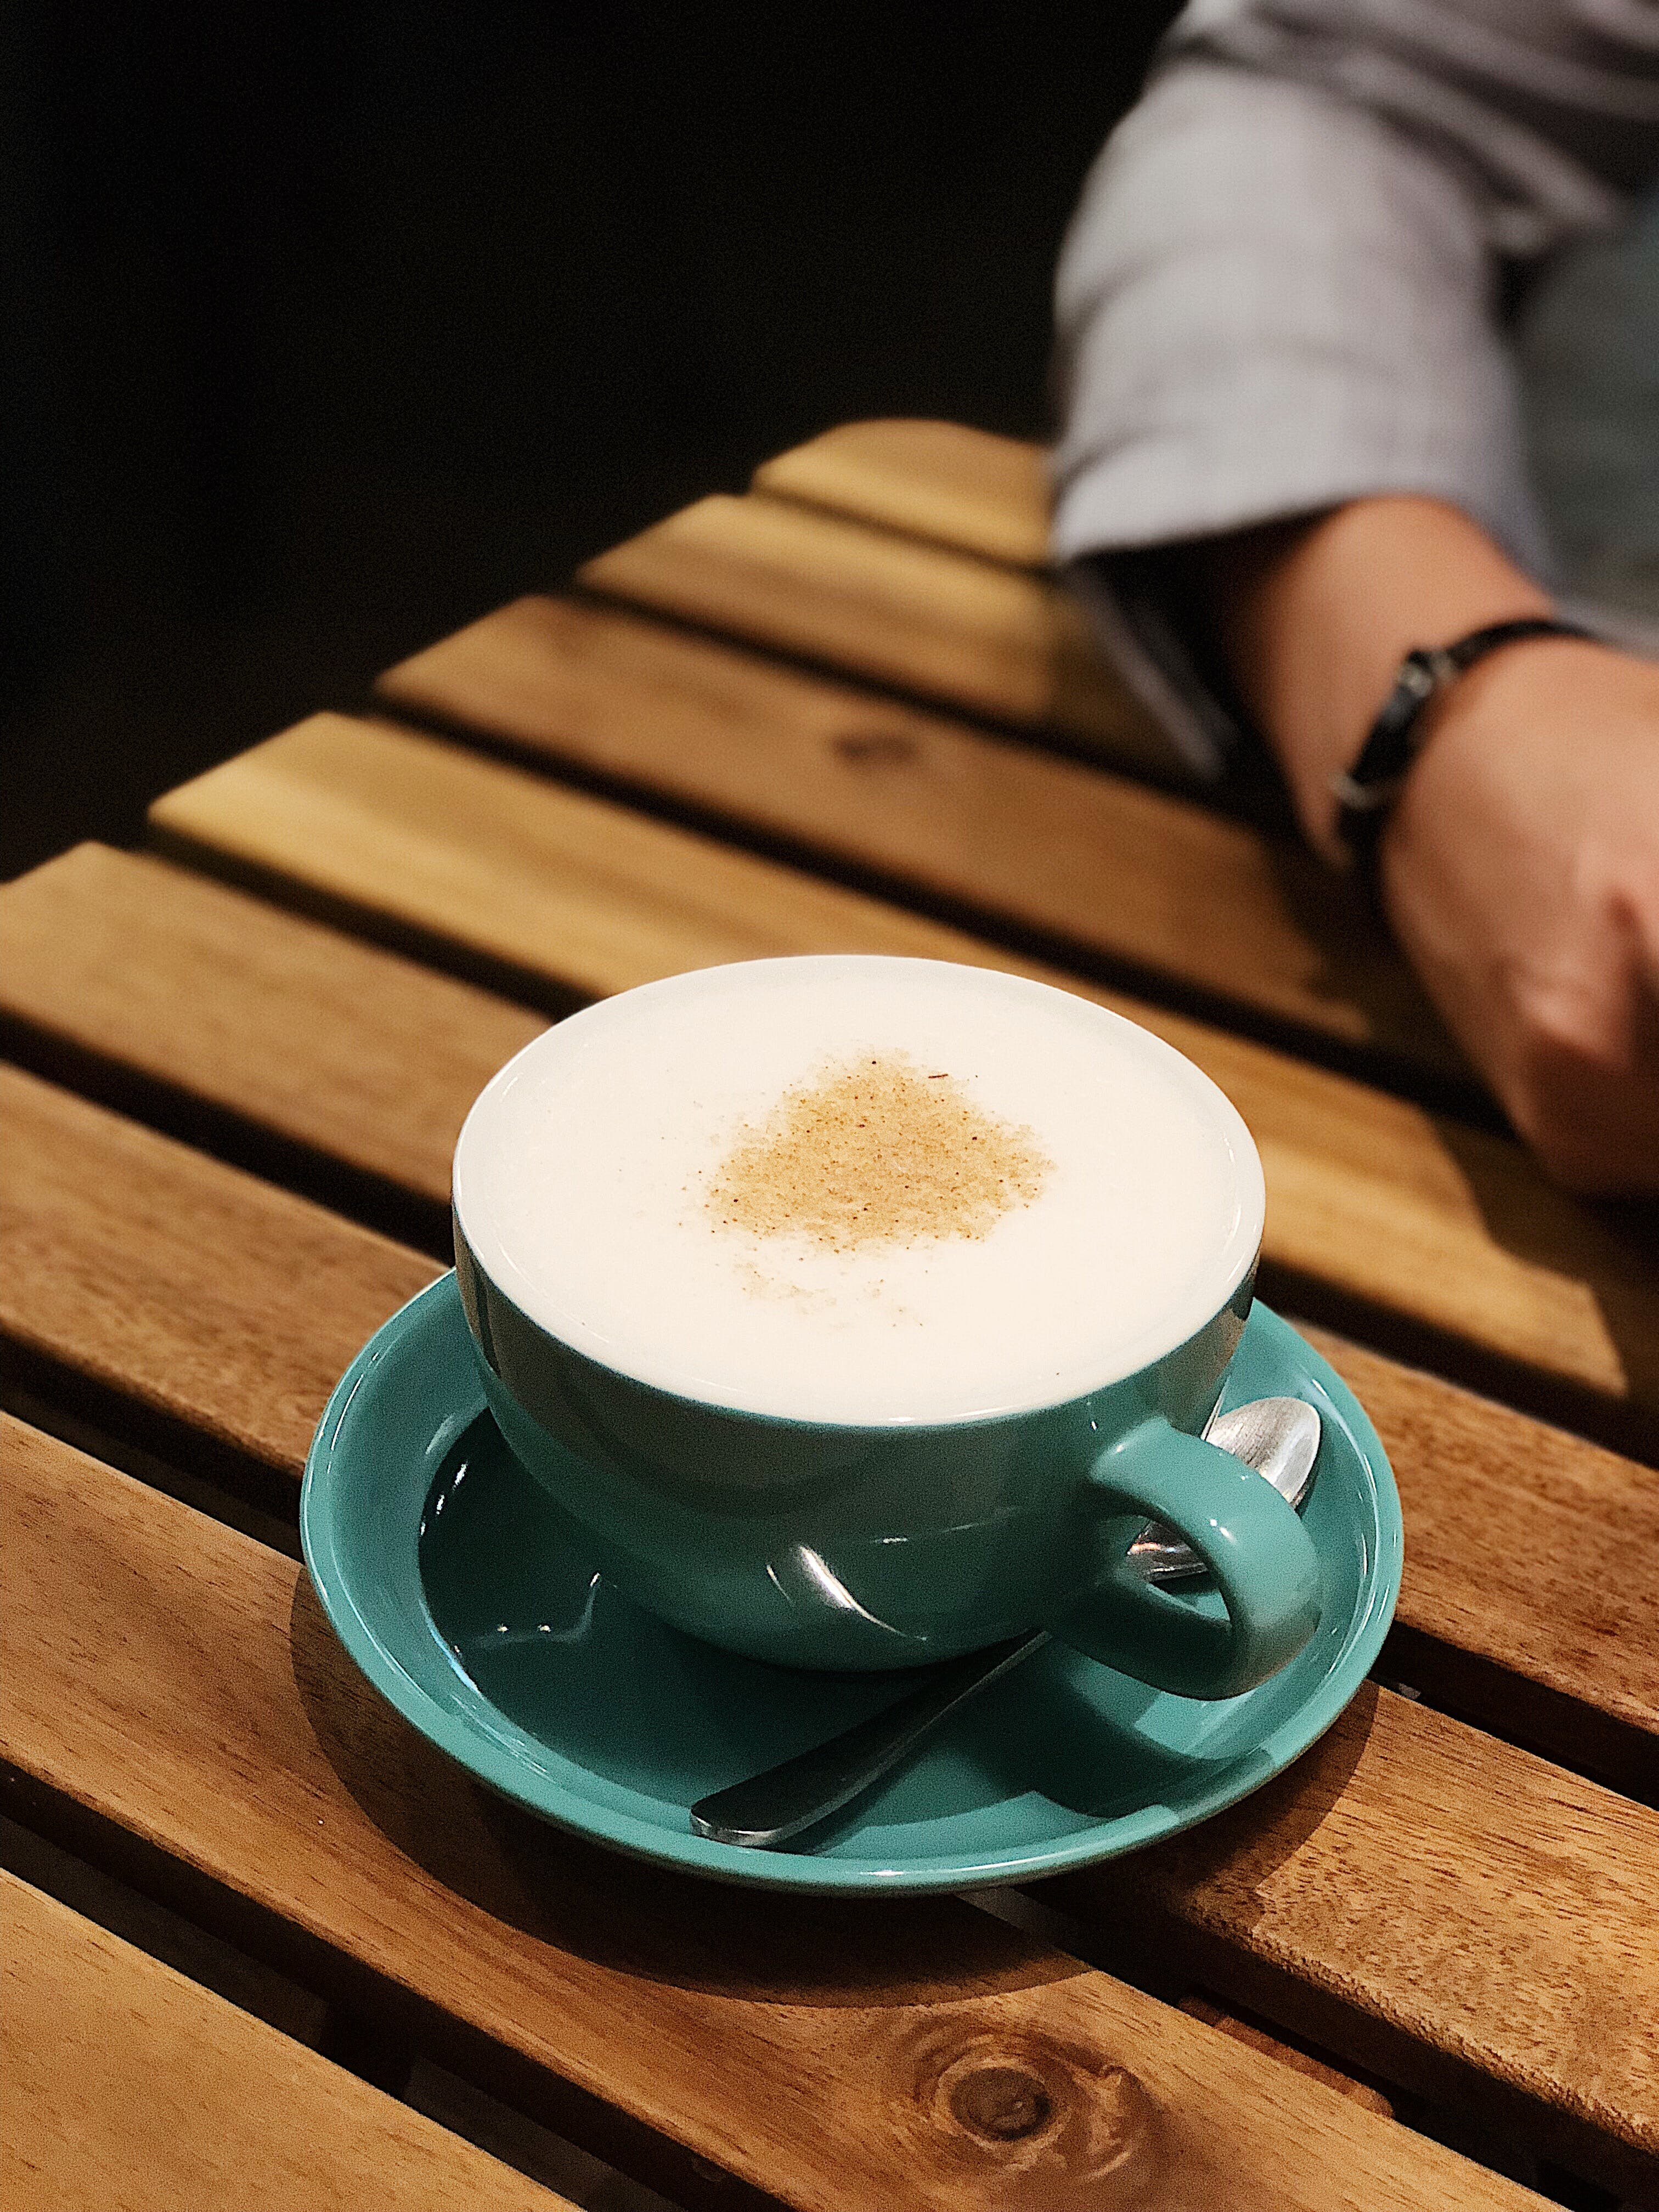 Cappuccino on Teal Ceramic Cup and Saucer